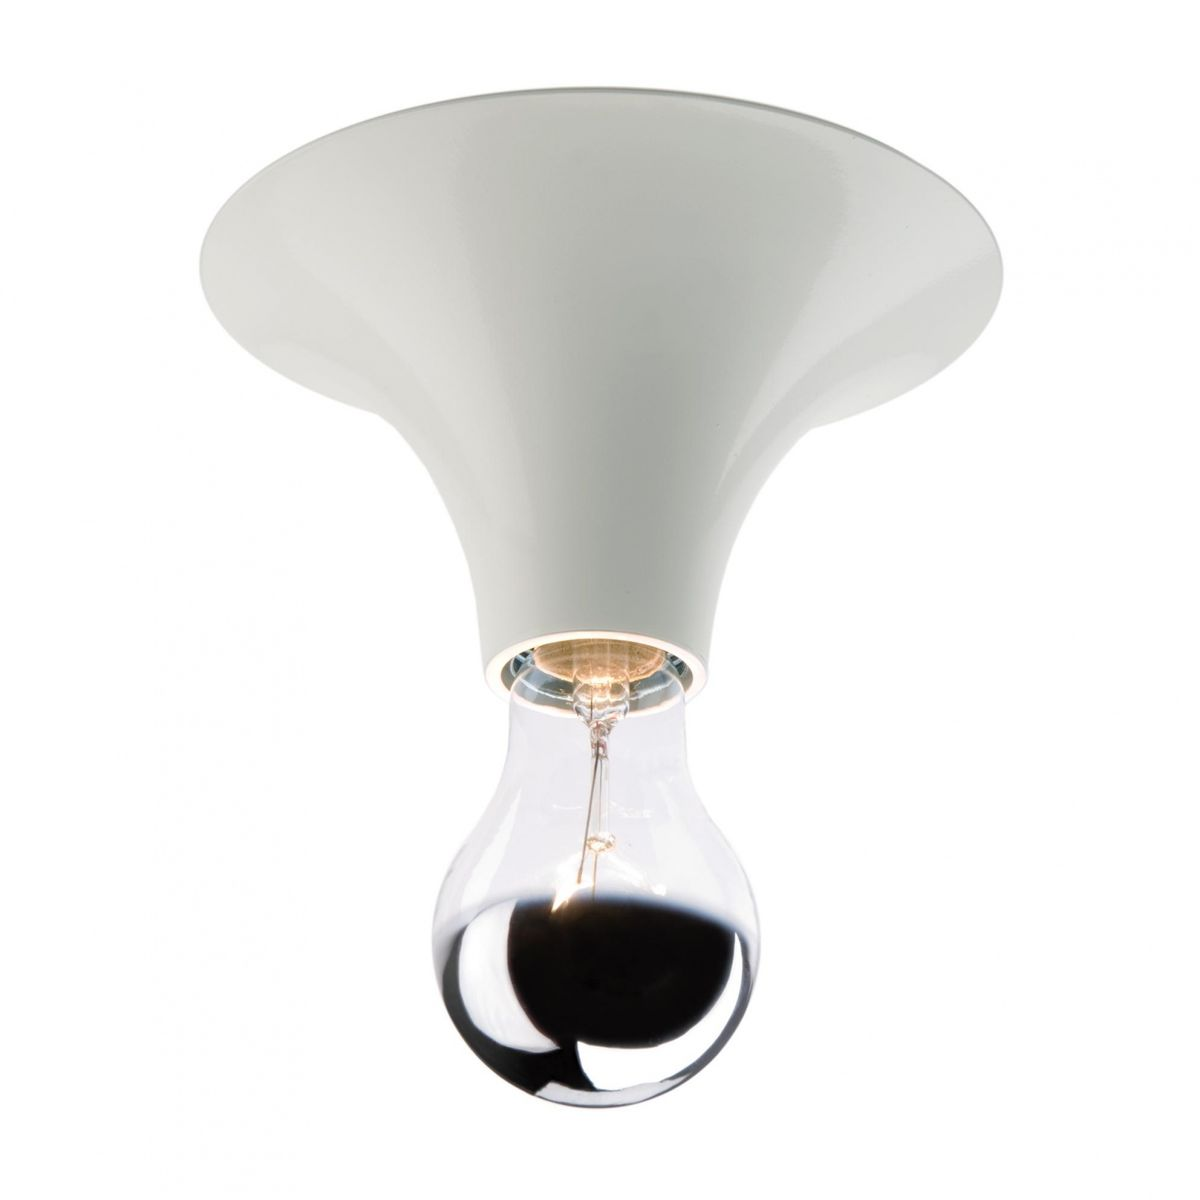 Etna Avance Etna Ceiling Lamp Mawa Design Ambientedirect